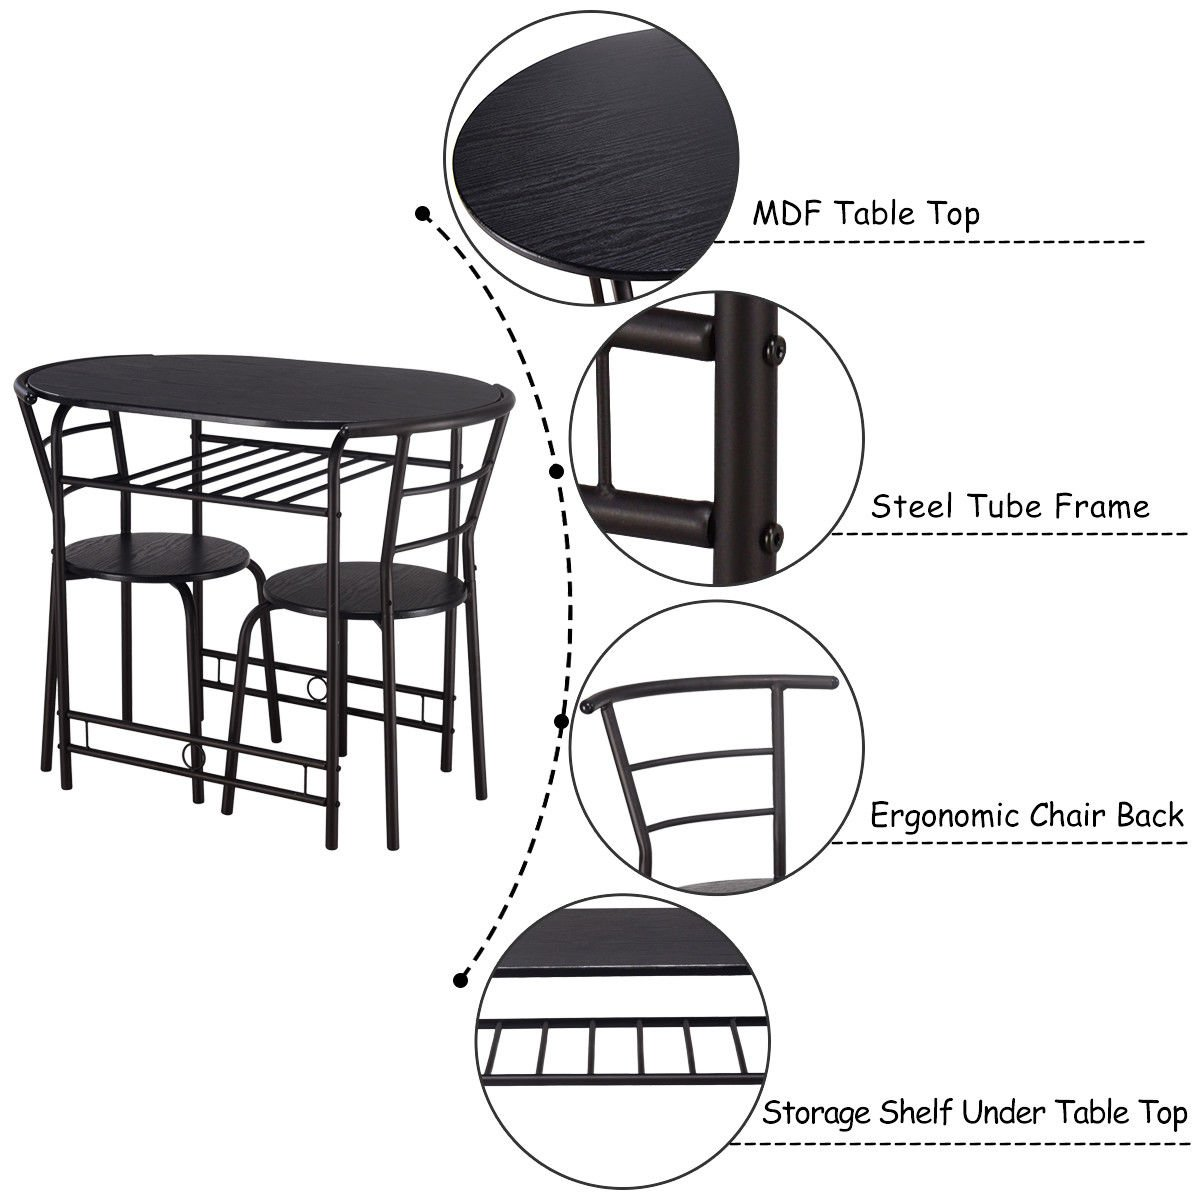 Giantex 3 PCS Dining Table Set w/1 Table and 2 Chairs Home Restaurant Breakfast Bistro Pub Kitchen Dining Room Furniture (Black) by Giantex (Image #4)